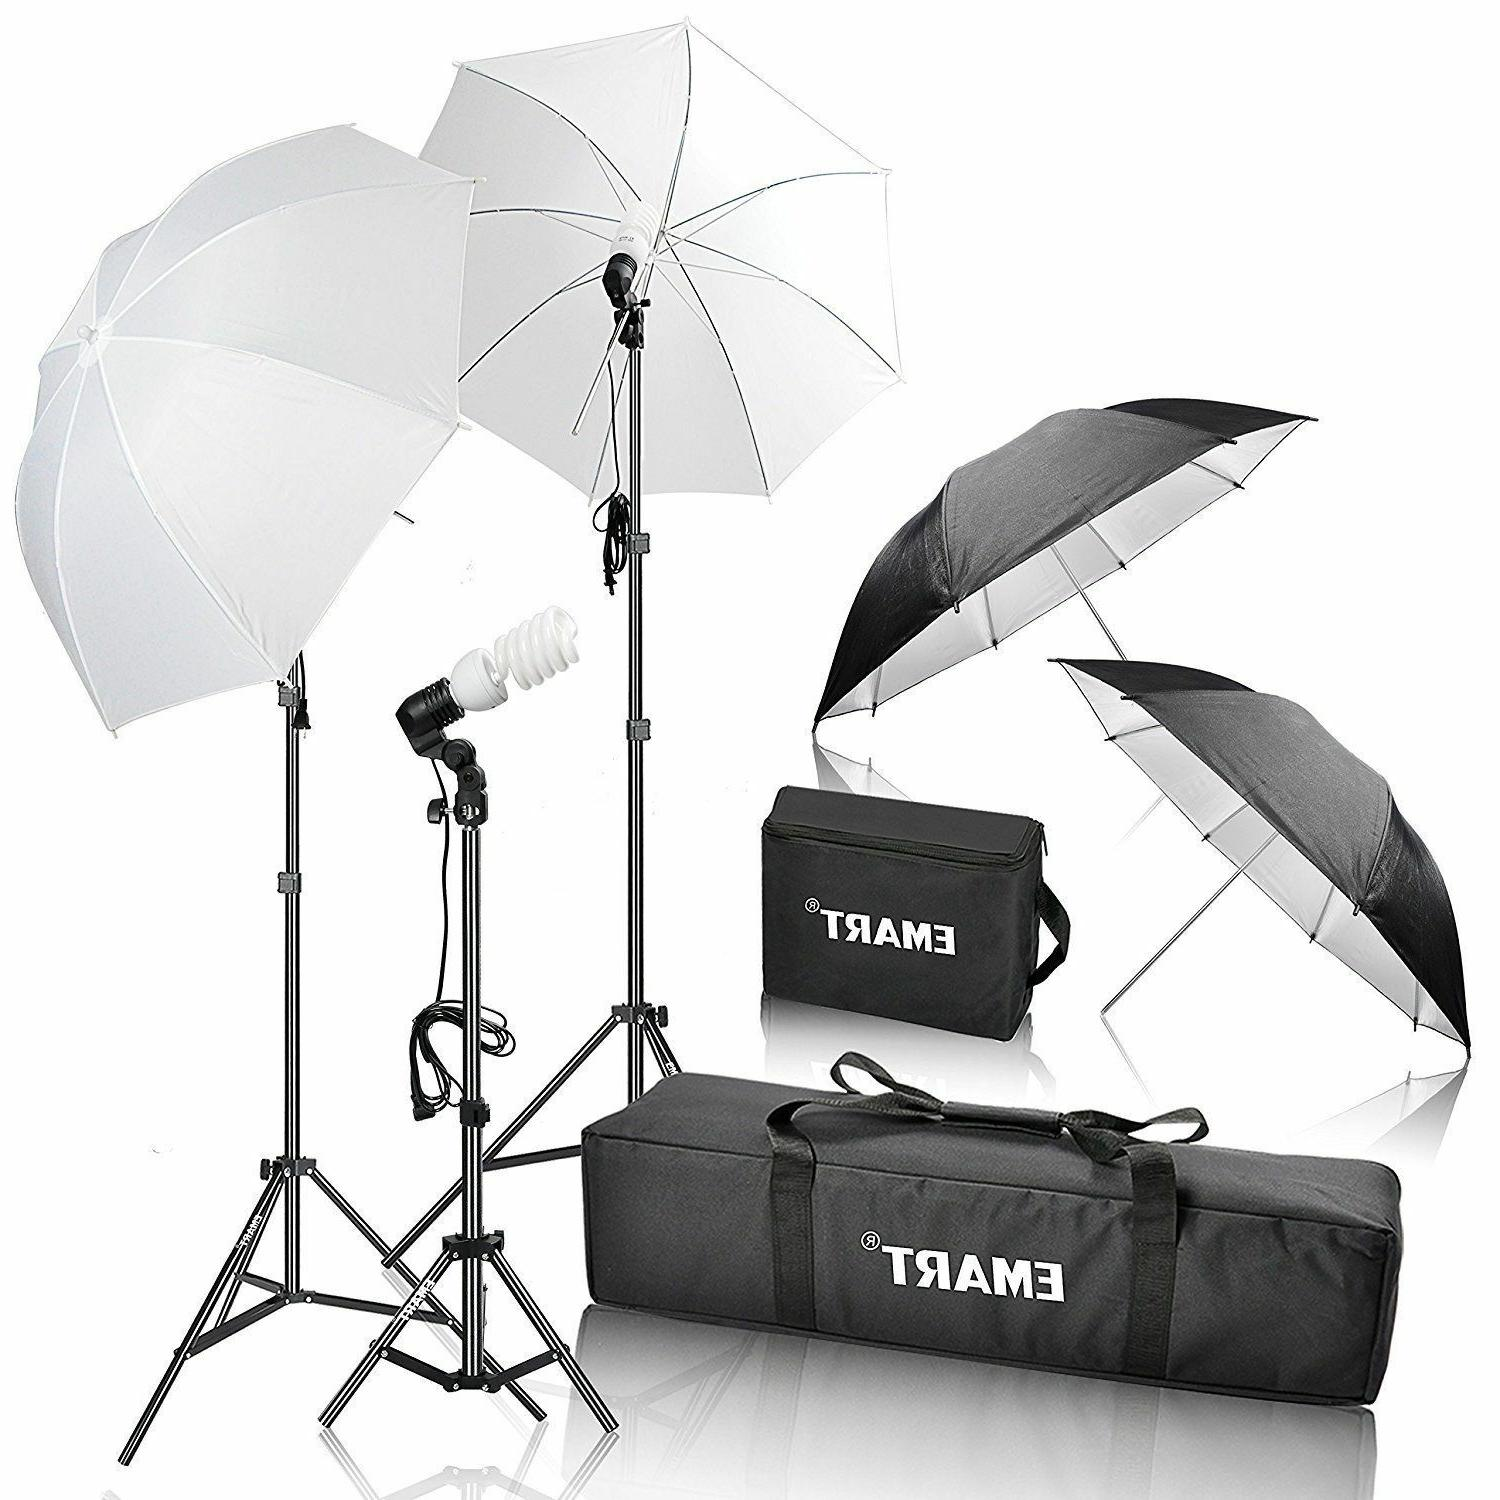 Emart 600W Photography Photo Video Portrait Studio Day Light